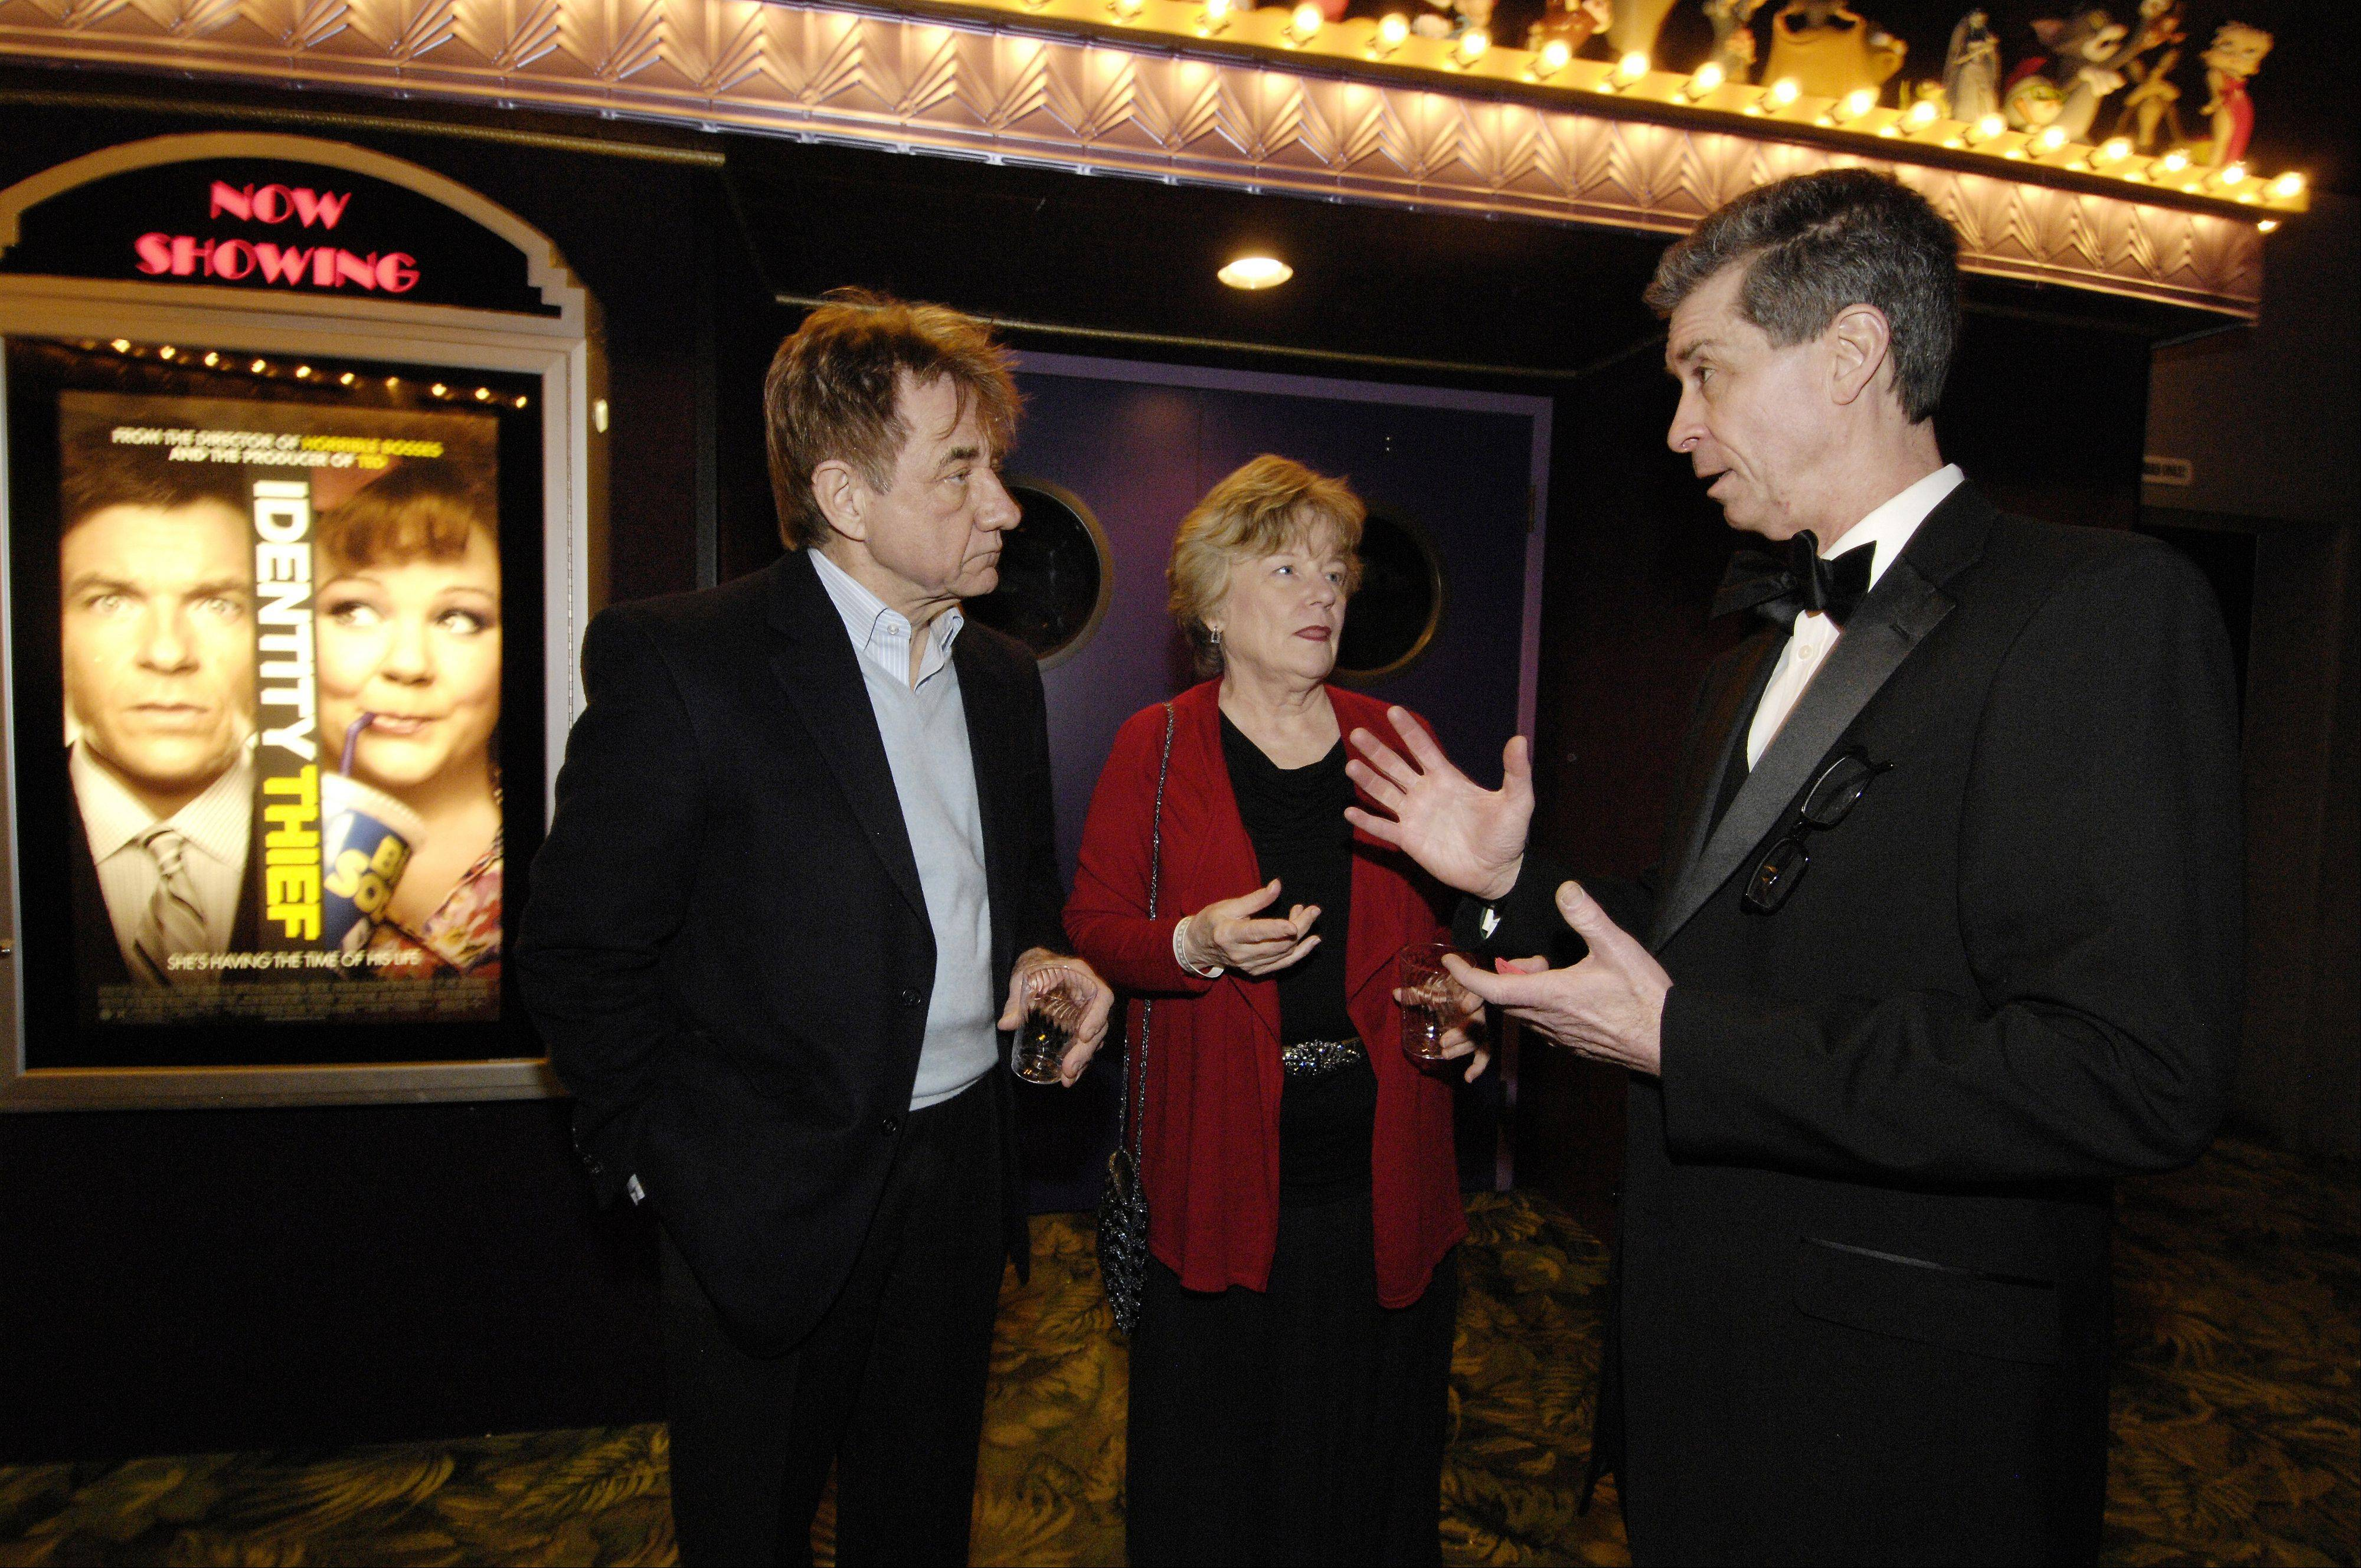 Daily Herald subscribers Bob and Patti Jostes of Arlington Heights talk with Daily Herald Film Critic Dann Gire during an Academy Awards event at the Hollywood Palms Cinema in Naperville, Sunday.